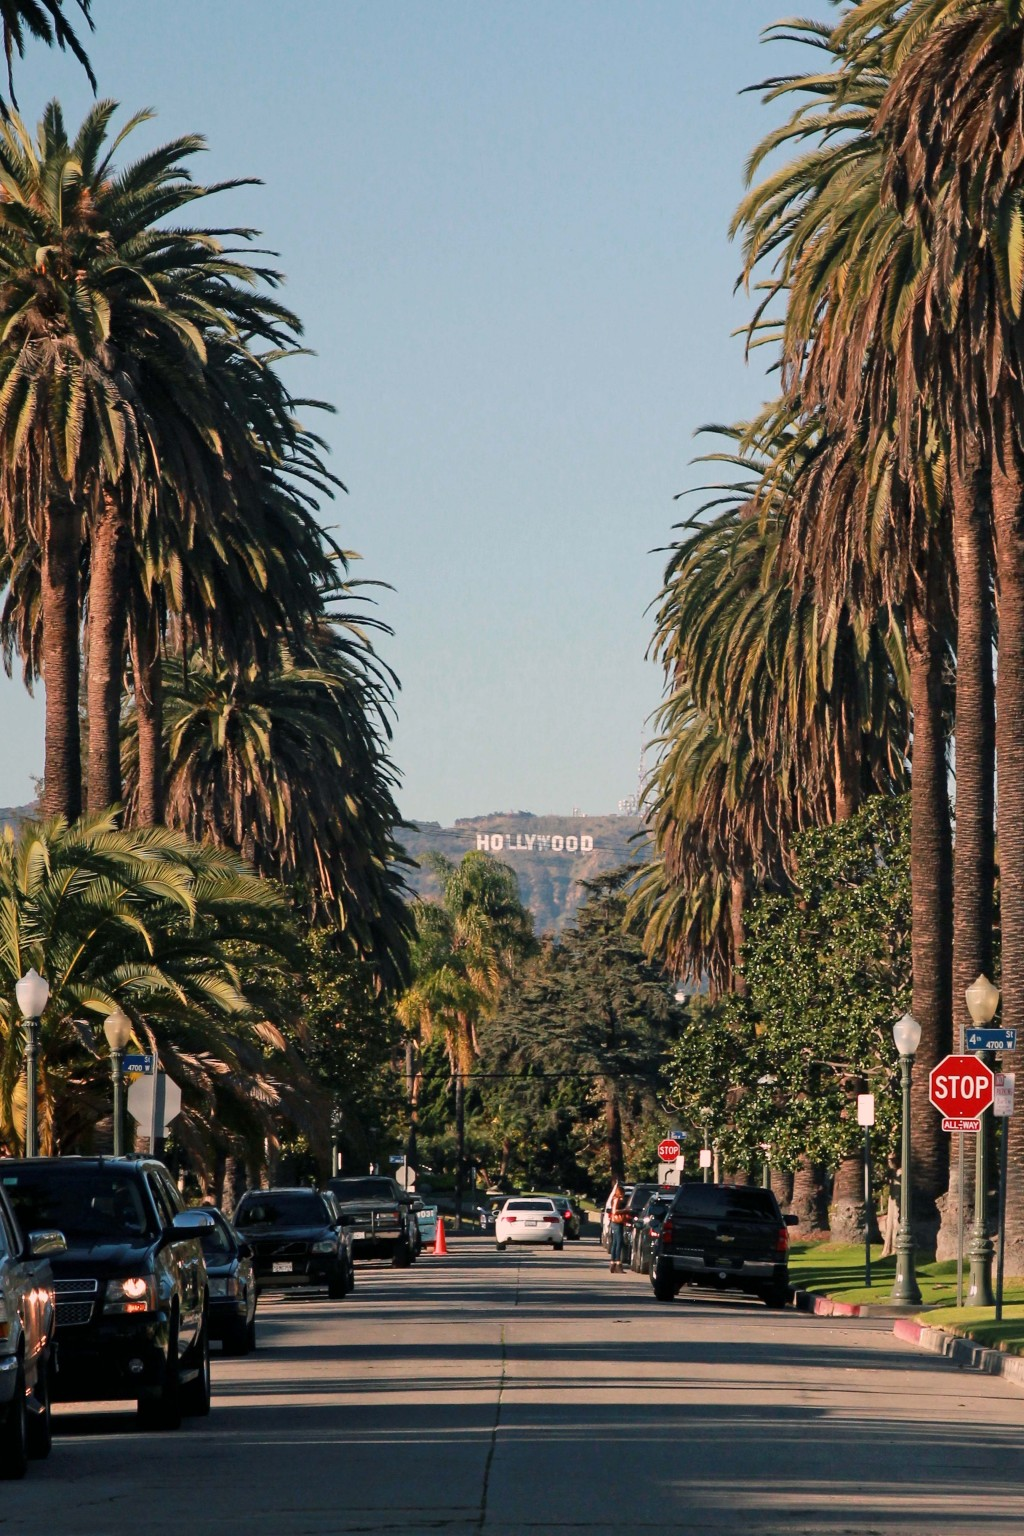 Hollywood sign on palm tree lined street